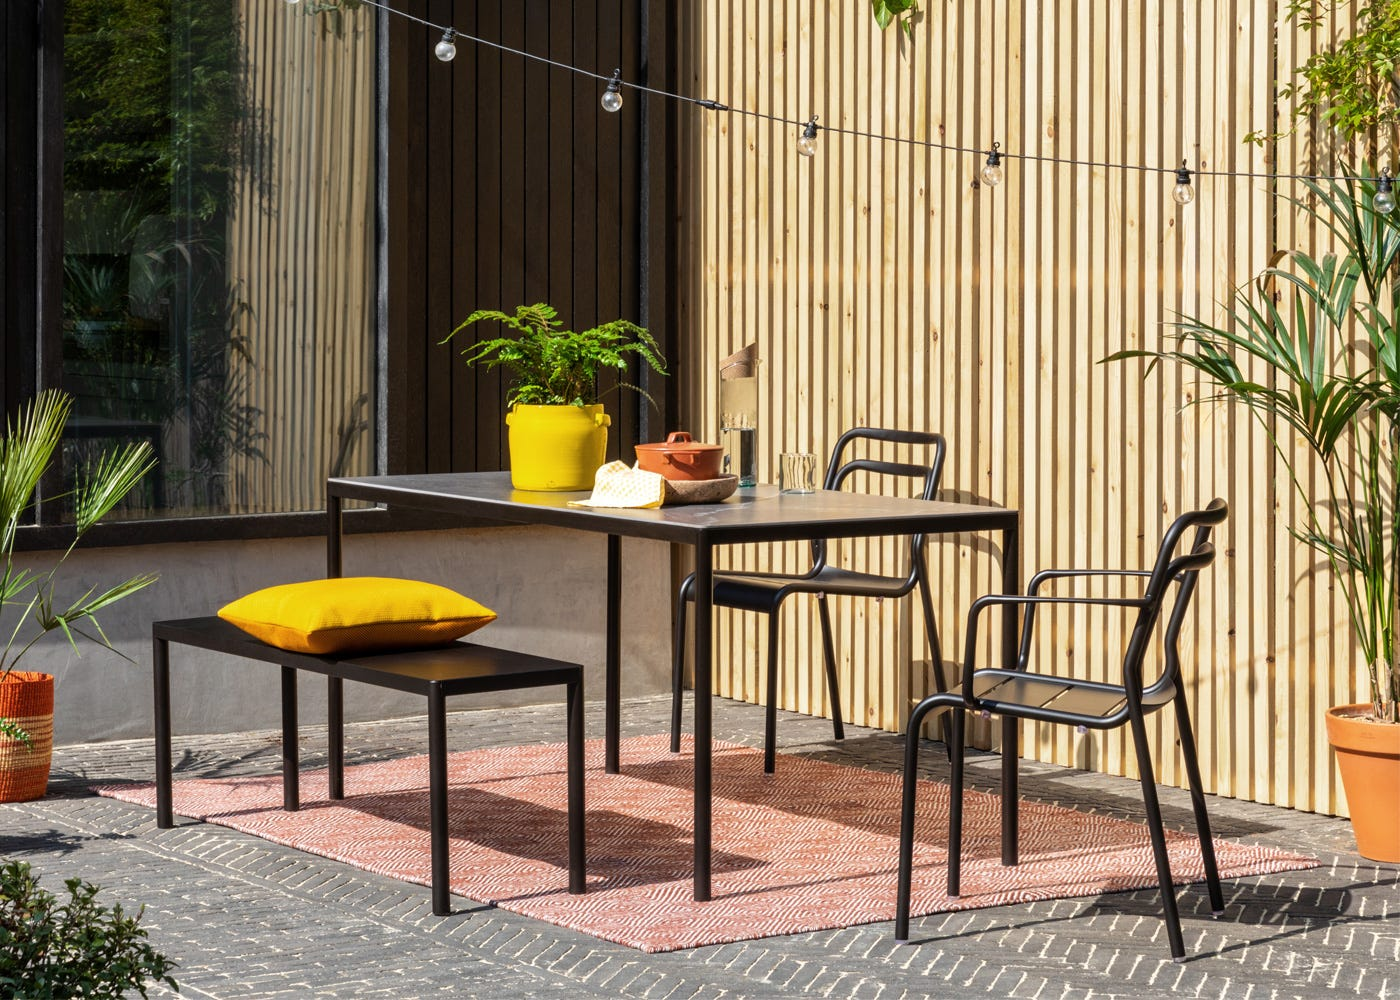 with the Petra Garden Furniture range